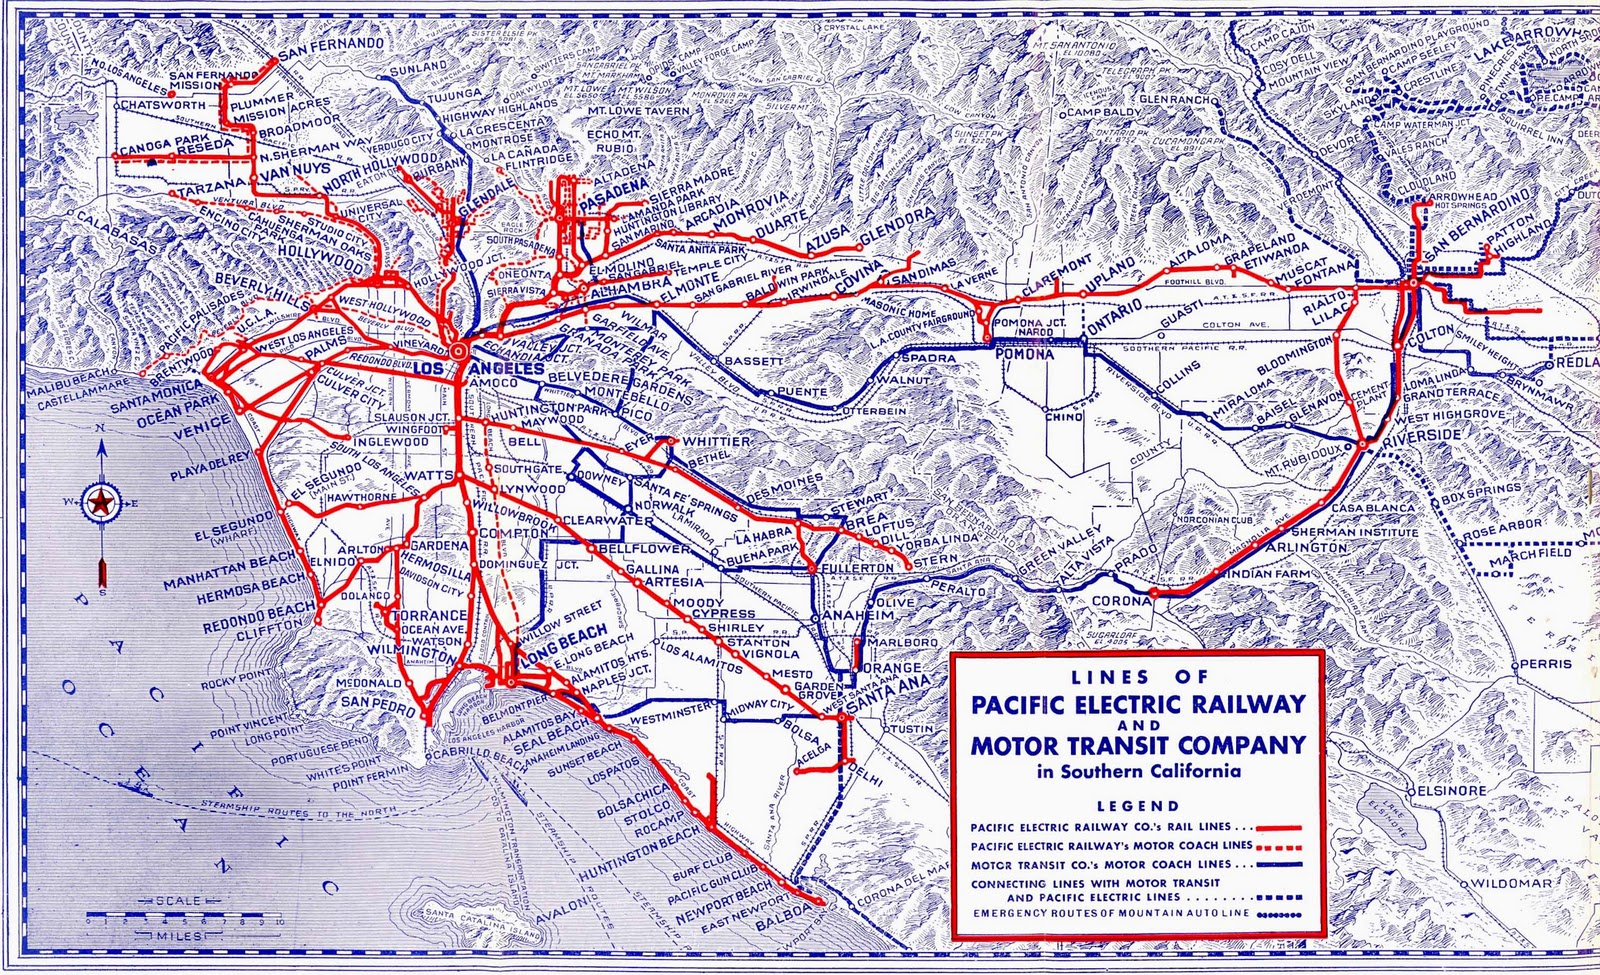 Project Transportation Final Submission - Los angeles freeway map traffic